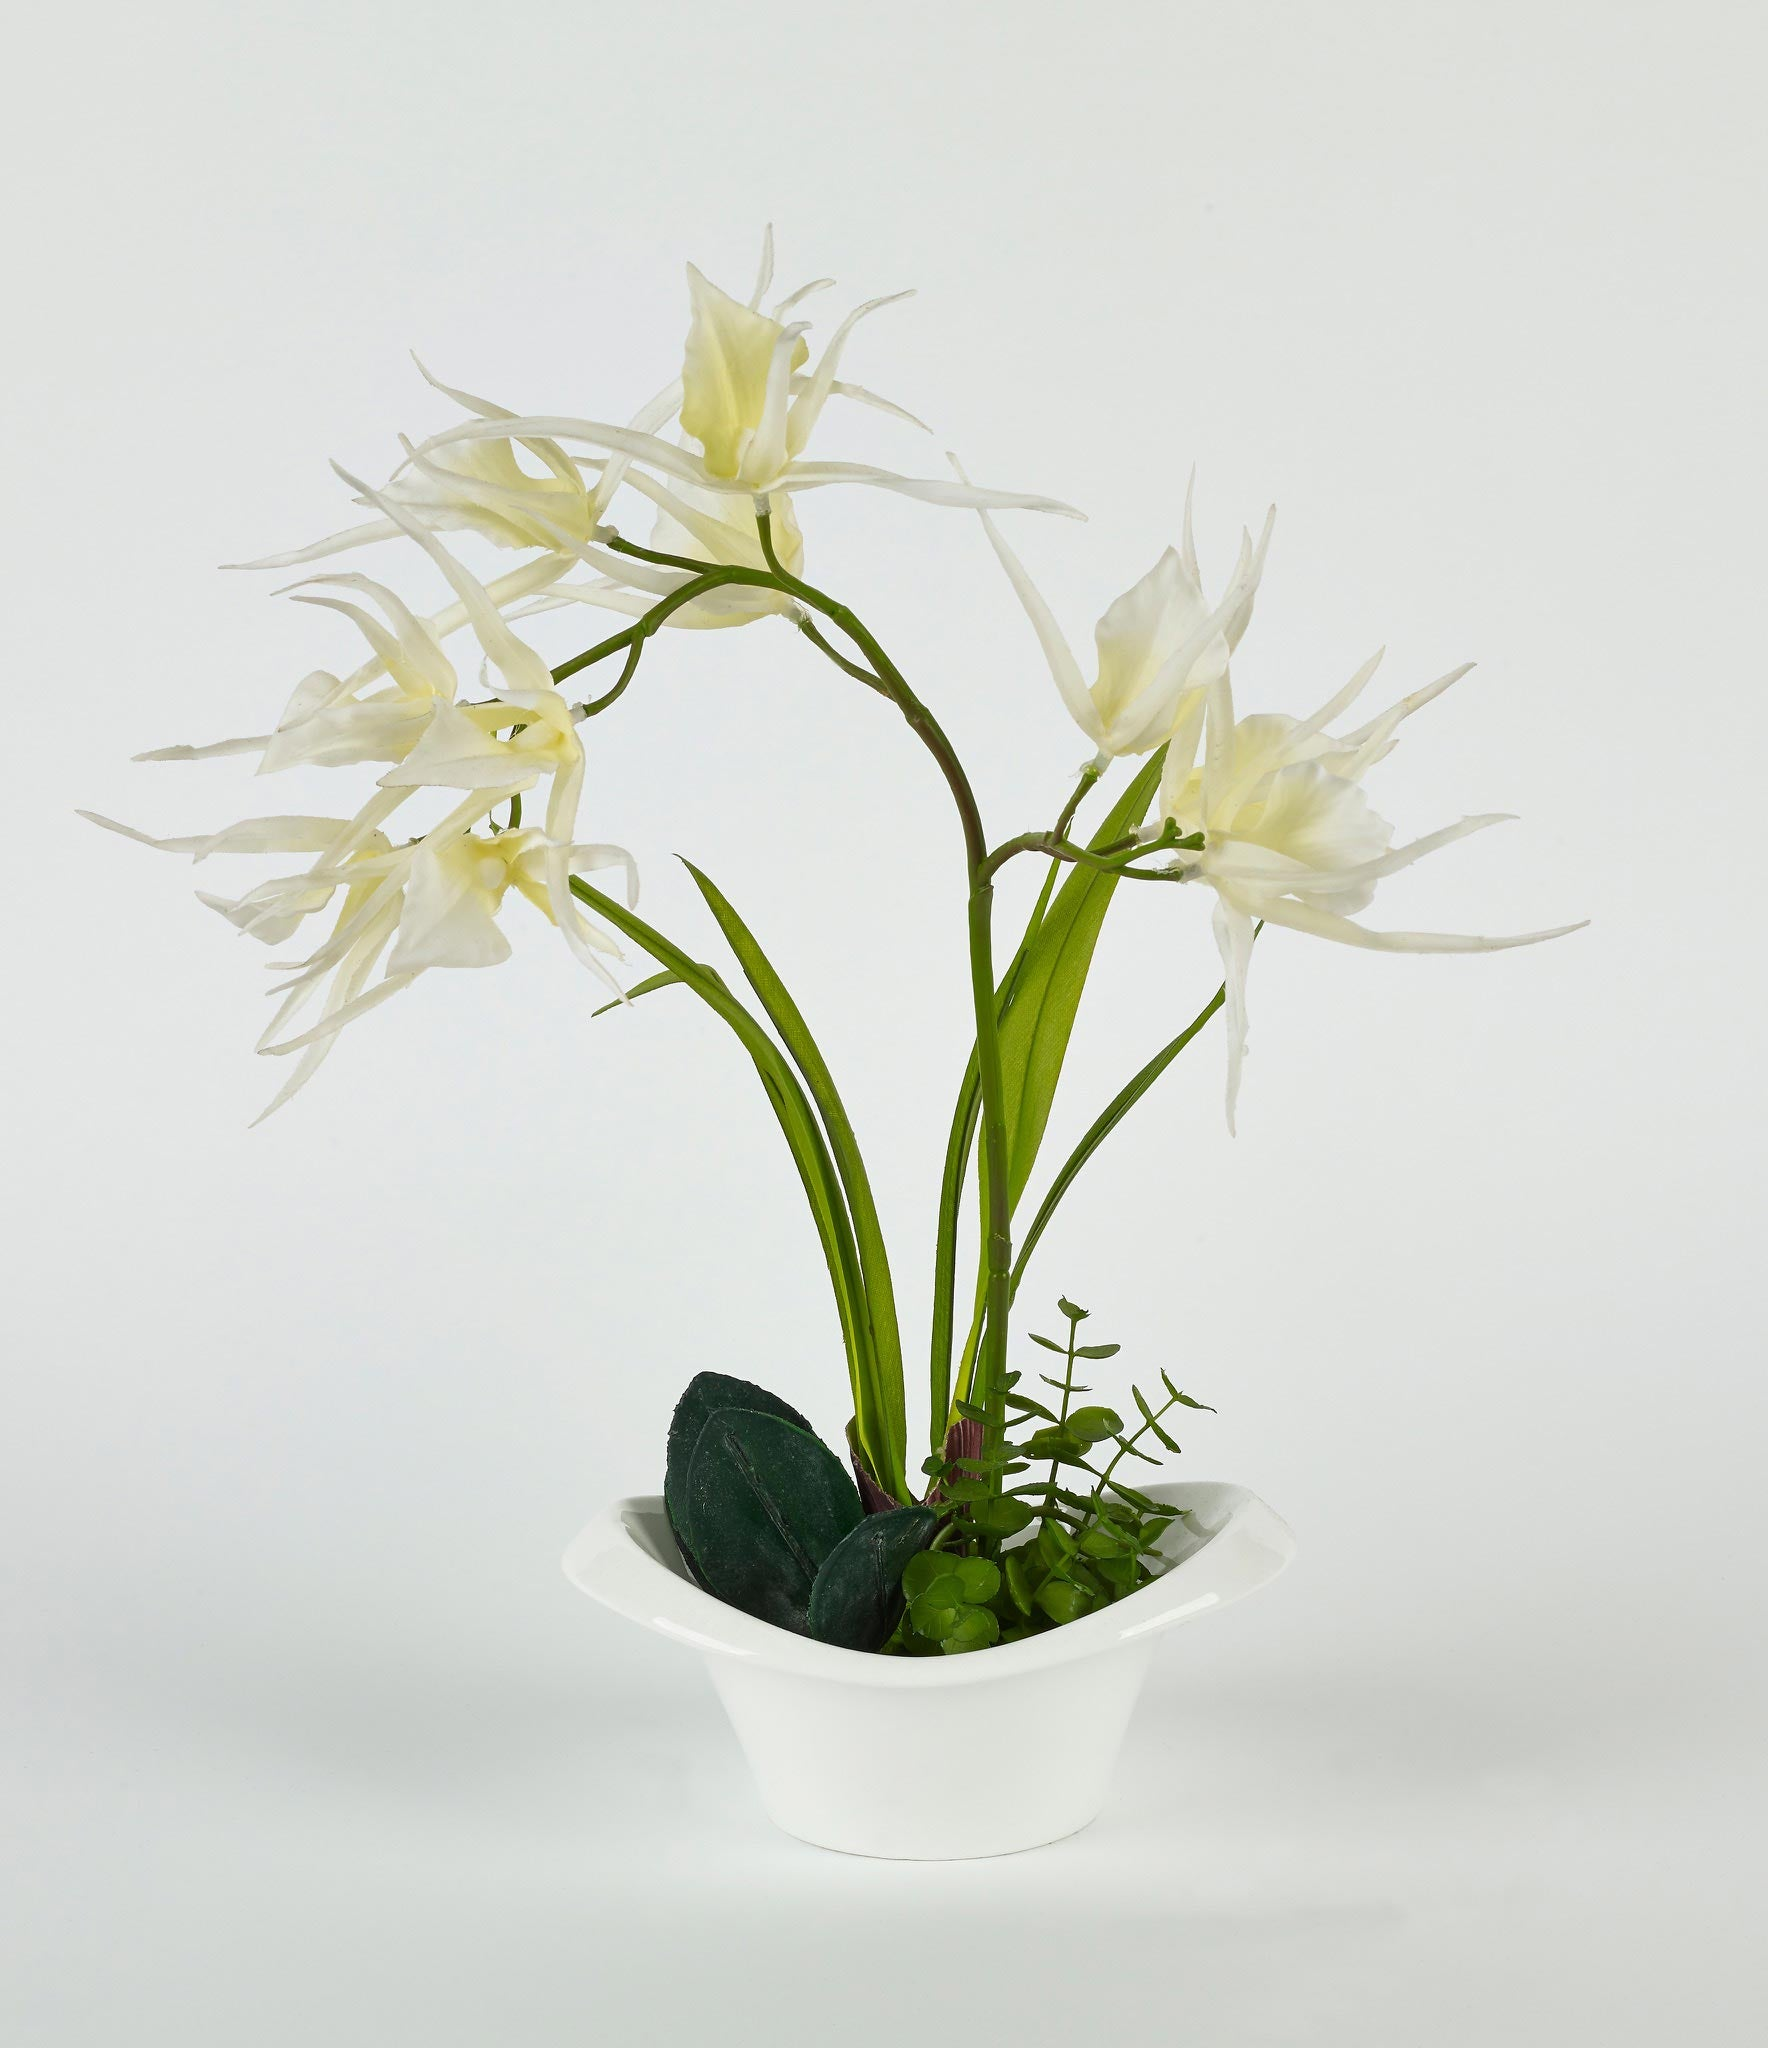 White Flowers in White Pot